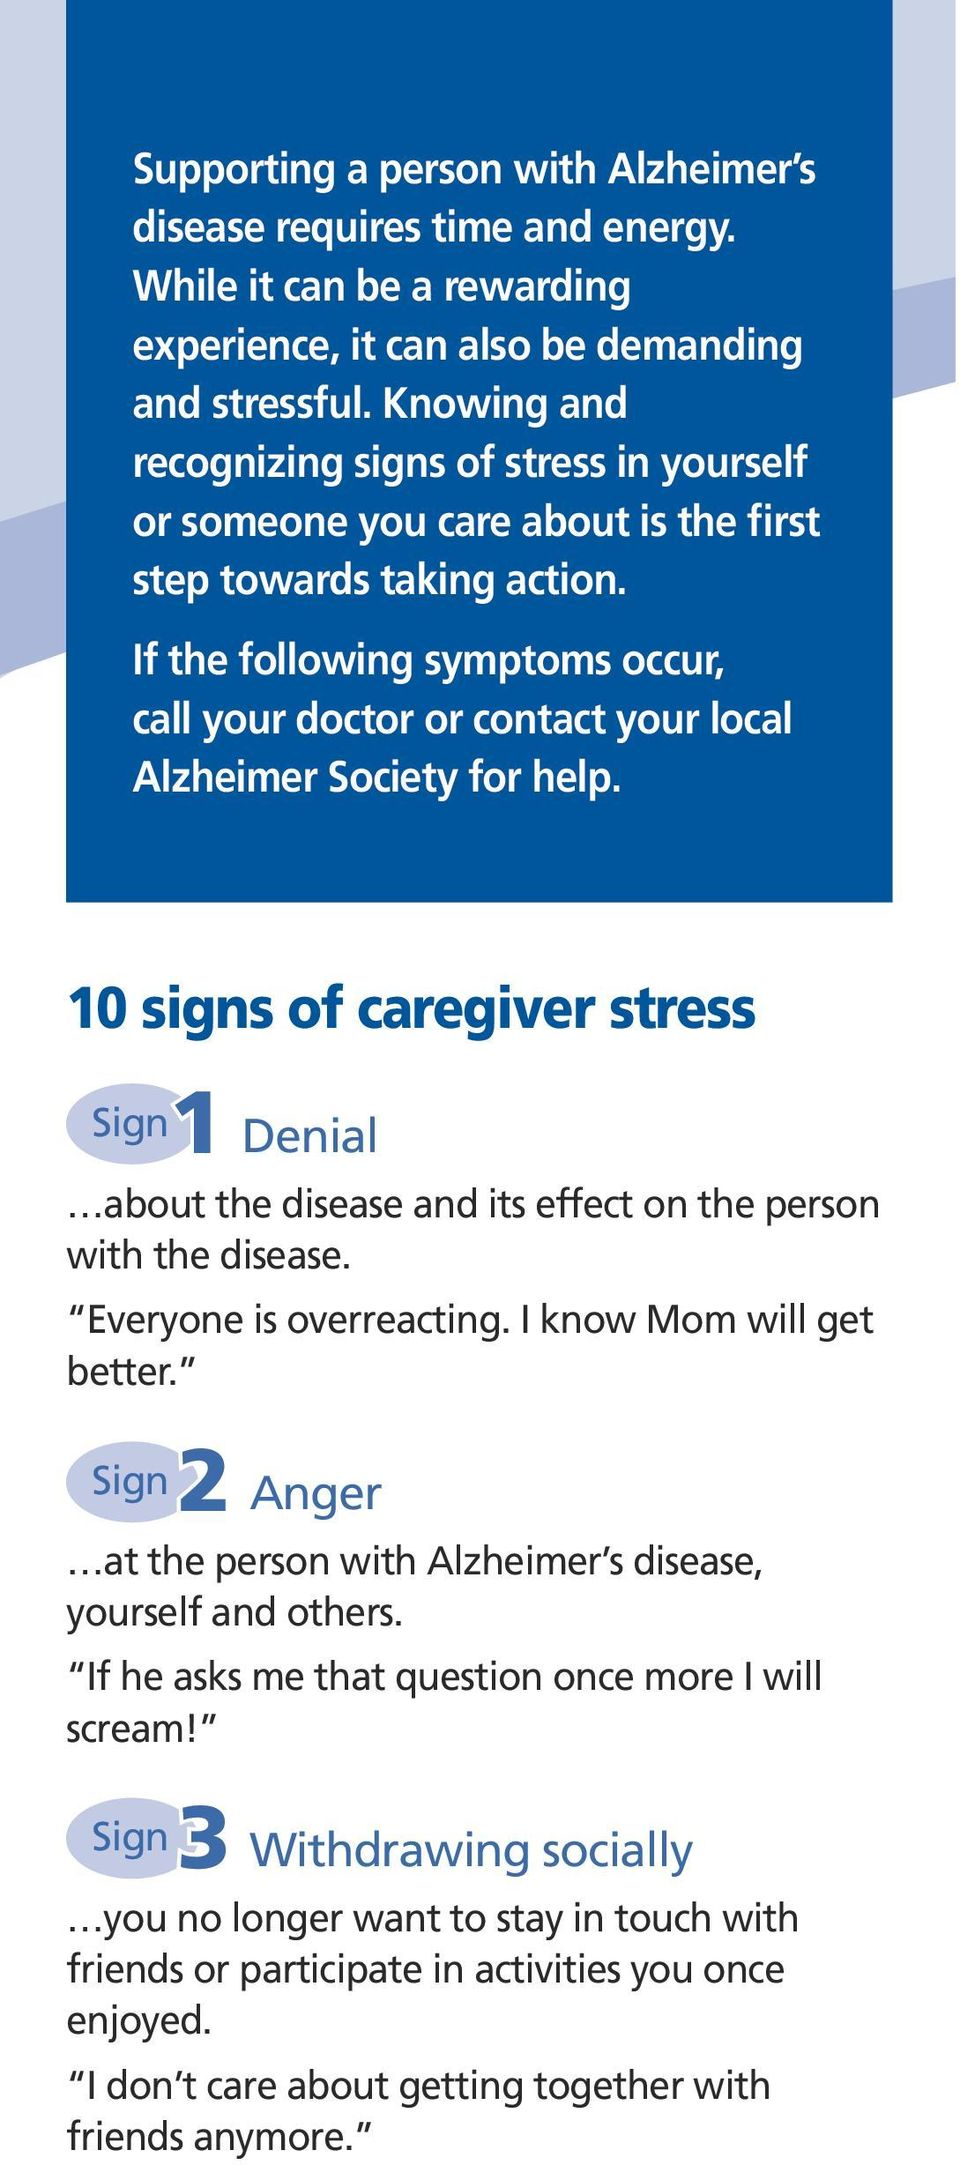 If the following symptoms occur, call your doctor or contact your local Alzheimer Society for help.